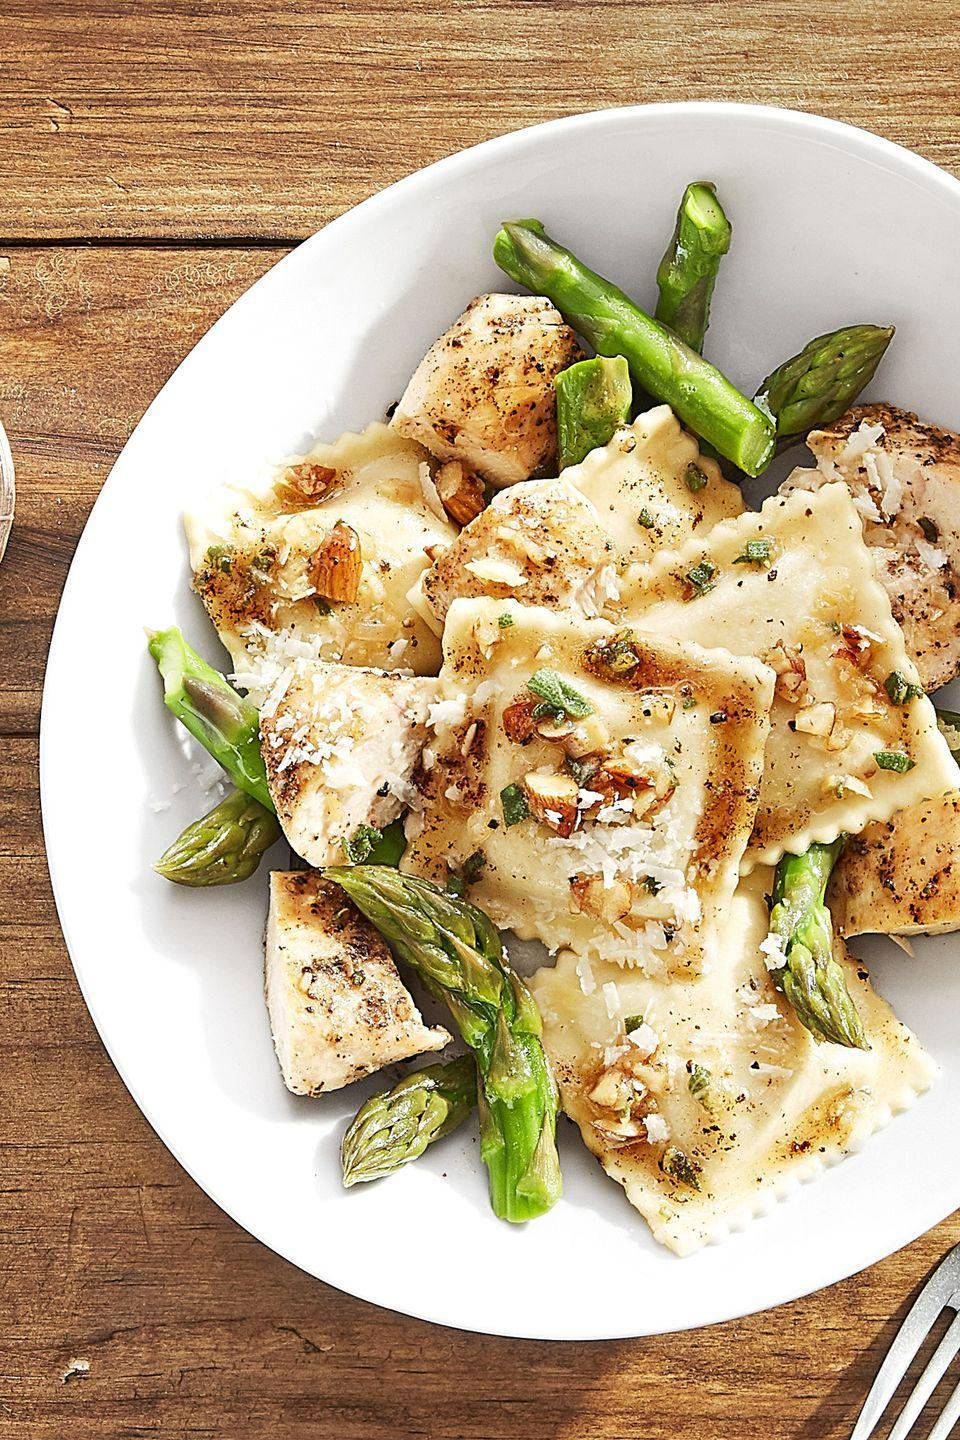 """<p>Make store-bought butternut squash ravioli your own by adding asparagus and seared chicken.</p><p><strong><a href=""""https://www.countryliving.com/food-drinks/recipes/a44277/butternut-squash-ravioli-seared-chicken-recipe/"""" rel=""""nofollow noopener"""" target=""""_blank"""" data-ylk=""""slk:Get the recipe"""" class=""""link rapid-noclick-resp"""">Get the recipe</a>.</strong><br></p><p><a class=""""link rapid-noclick-resp"""" href=""""https://www.amazon.com/HYTX-Stainless-2-Piece-5-Quart-Tempered/dp/B07ZHLSYXV/?tag=syn-yahoo-20&ascsubtag=%5Bartid%7C10050.g.680%5Bsrc%7Cyahoo-us"""" rel=""""nofollow noopener"""" target=""""_blank"""" data-ylk=""""slk:SHOP STOCKPOTS"""">SHOP STOCKPOTS</a> </p>"""